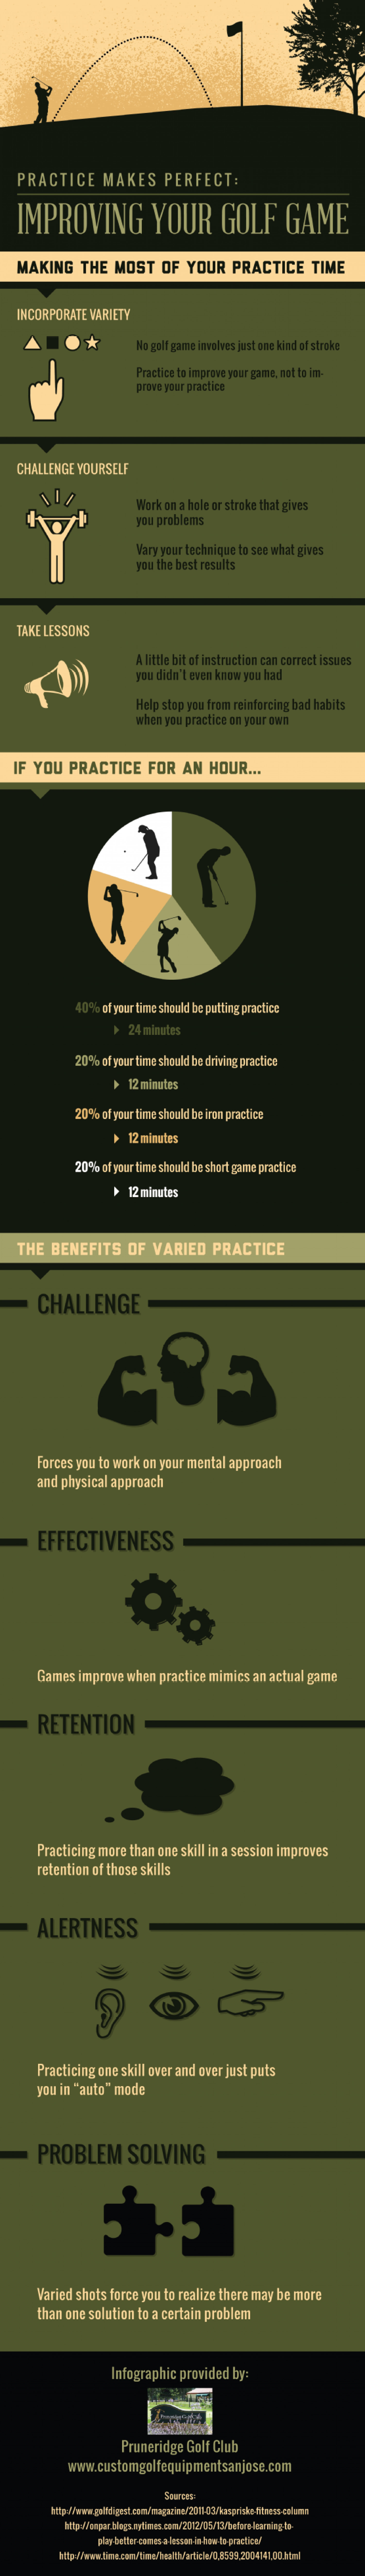 Practice Makes Perfect: Improving Your Golf Game